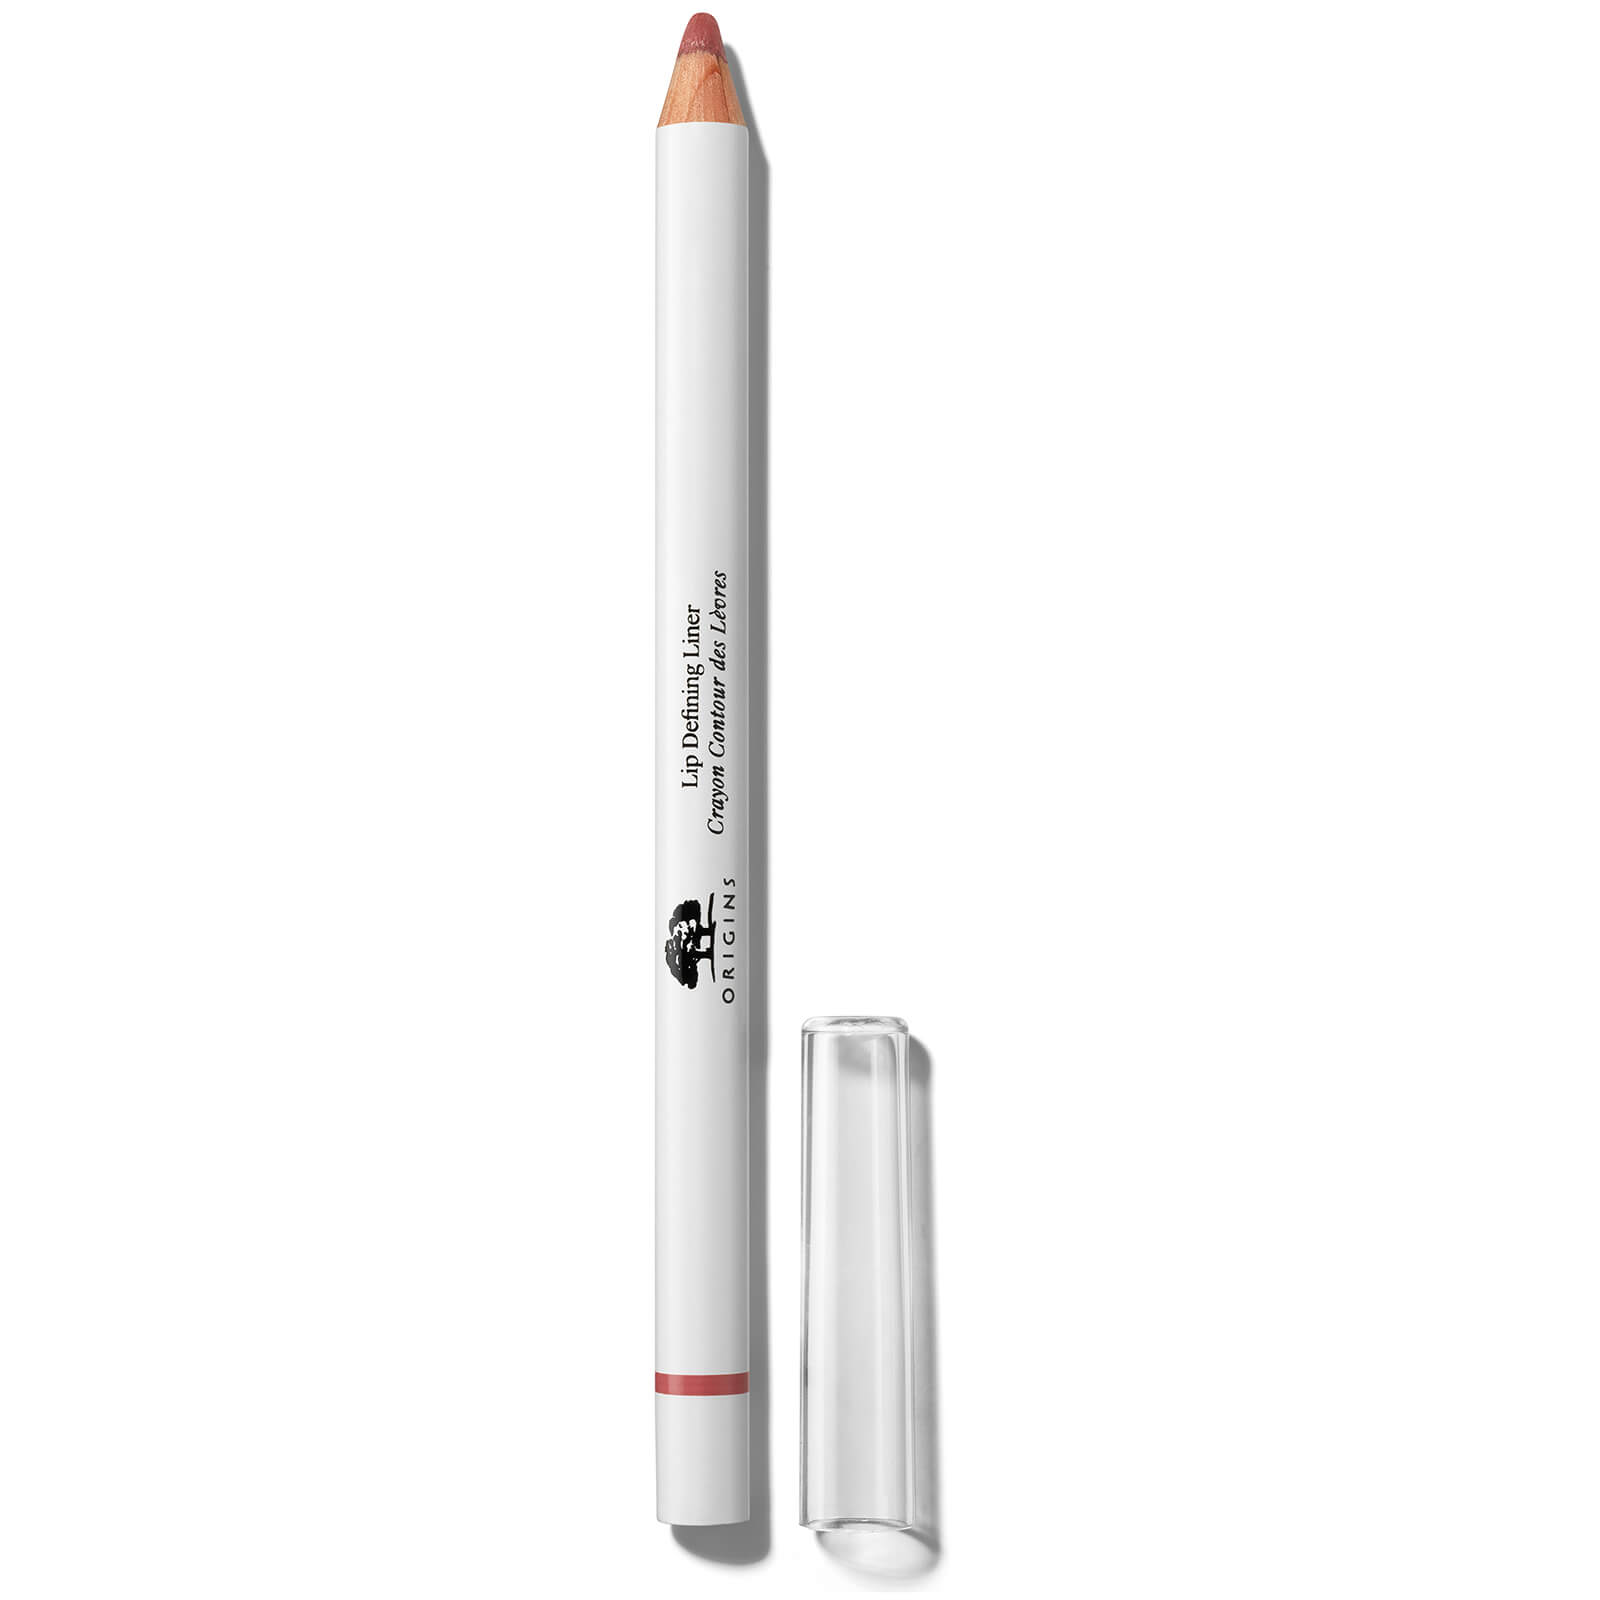 Origins Kiss and Tell Lip Defining Liner